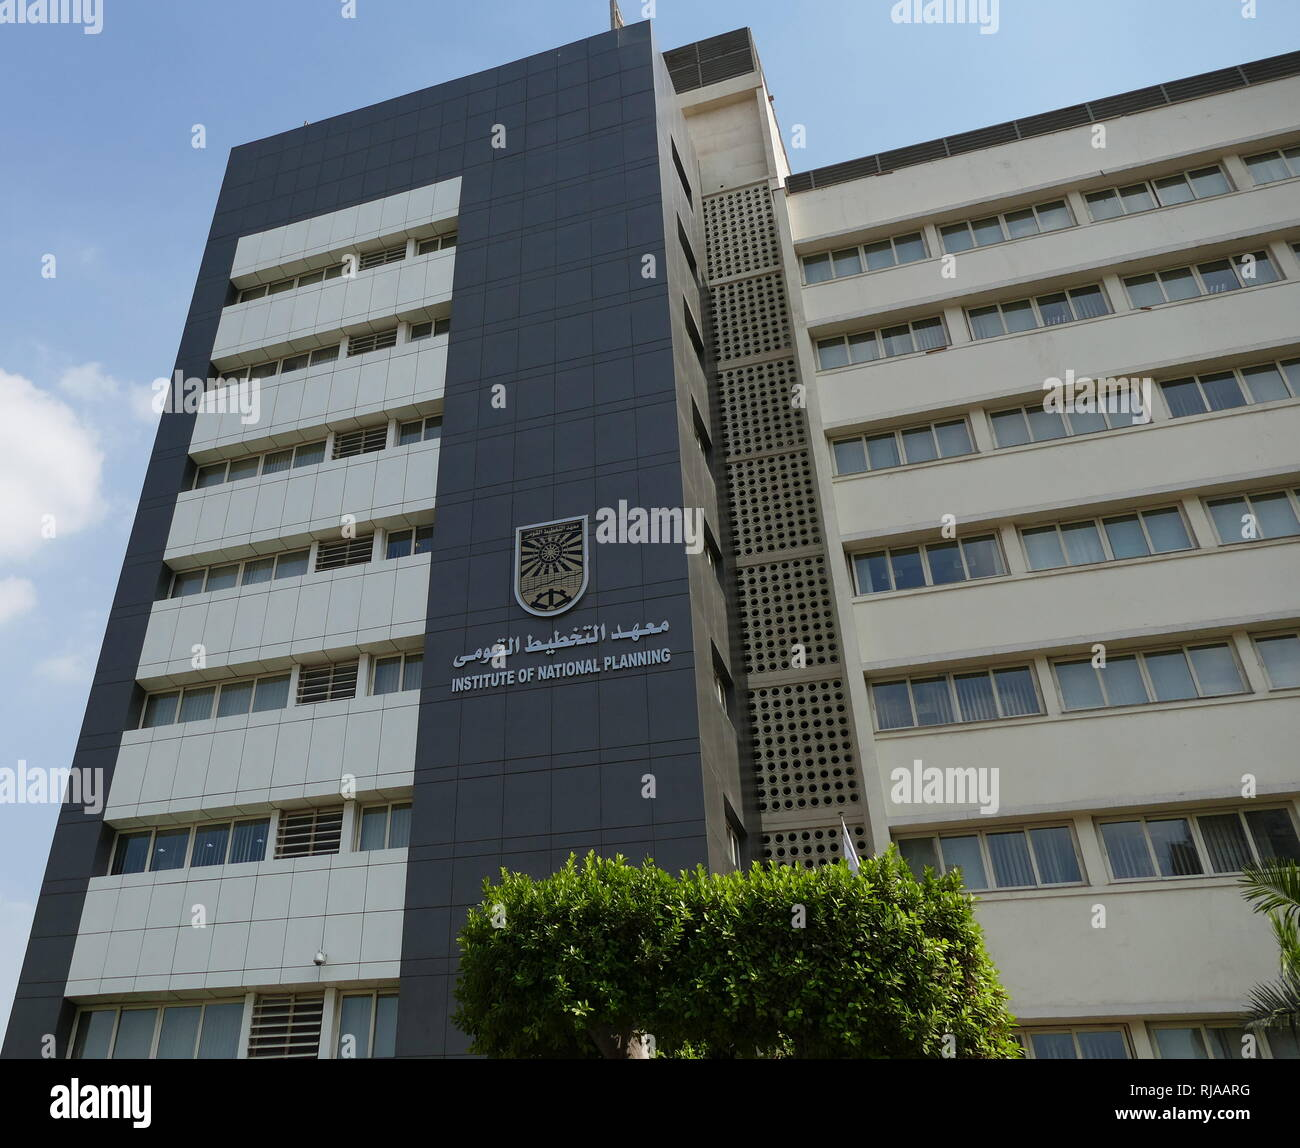 the Egyptian National Planning Institute, promotes research and development studies and planning related to the numbers of national plans and means of implementation and study of the principles and methods of scientific, technical, economic and social planning and national work on the application in order to achieve national goals Stock Photo